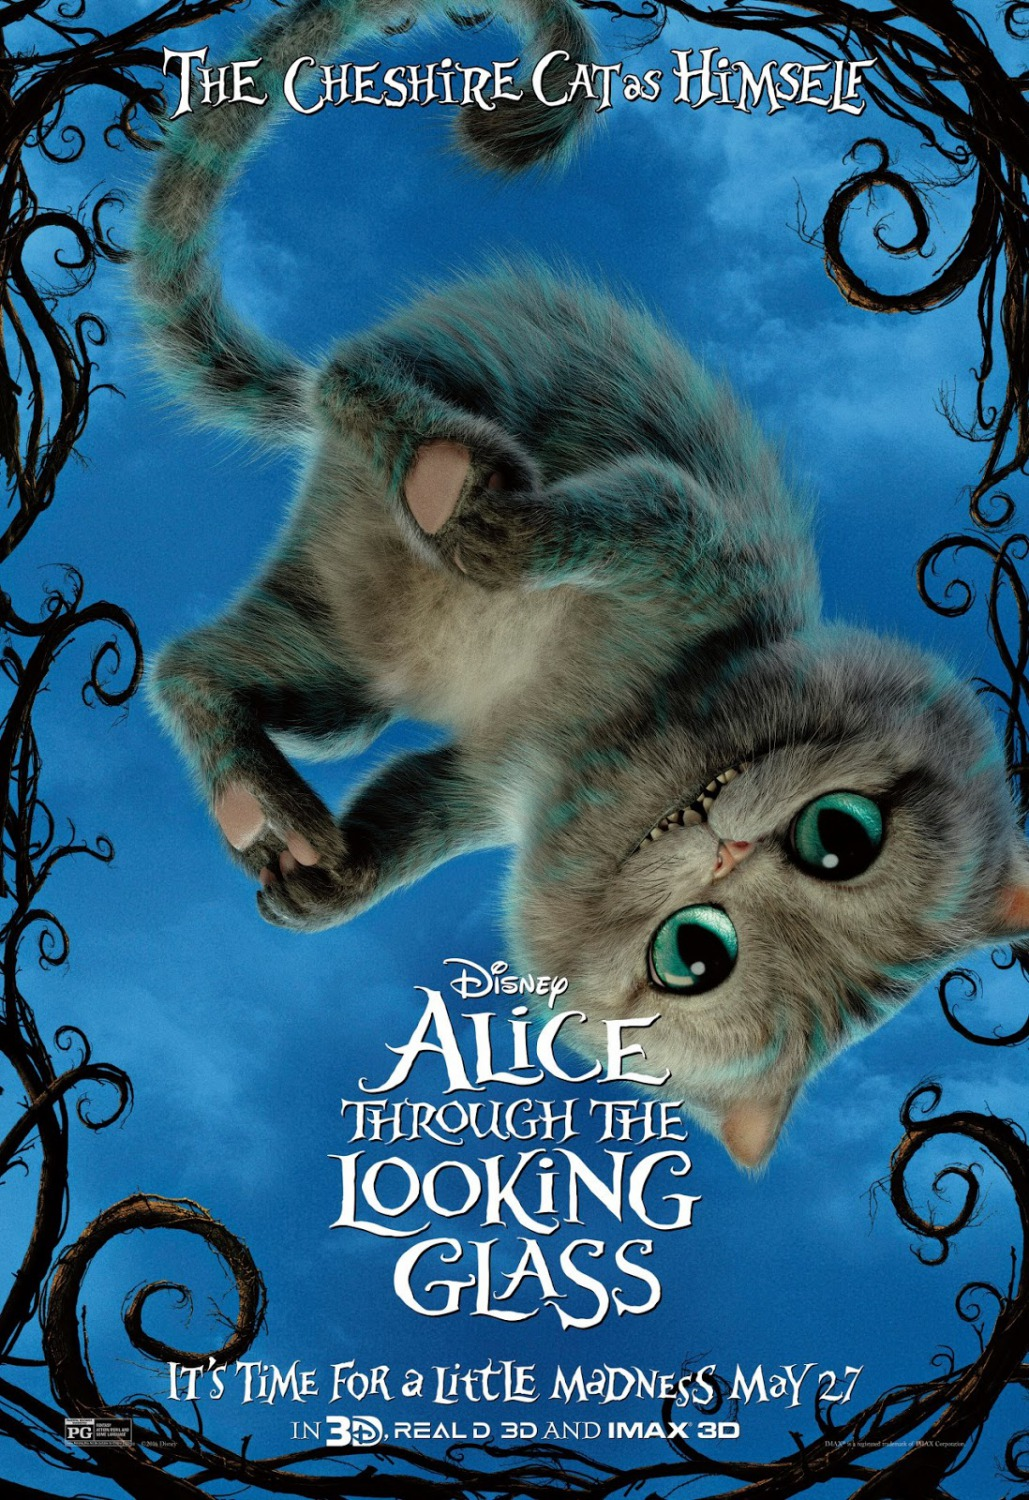 Alice Through The Looking Glass New Character Posters Are Magical